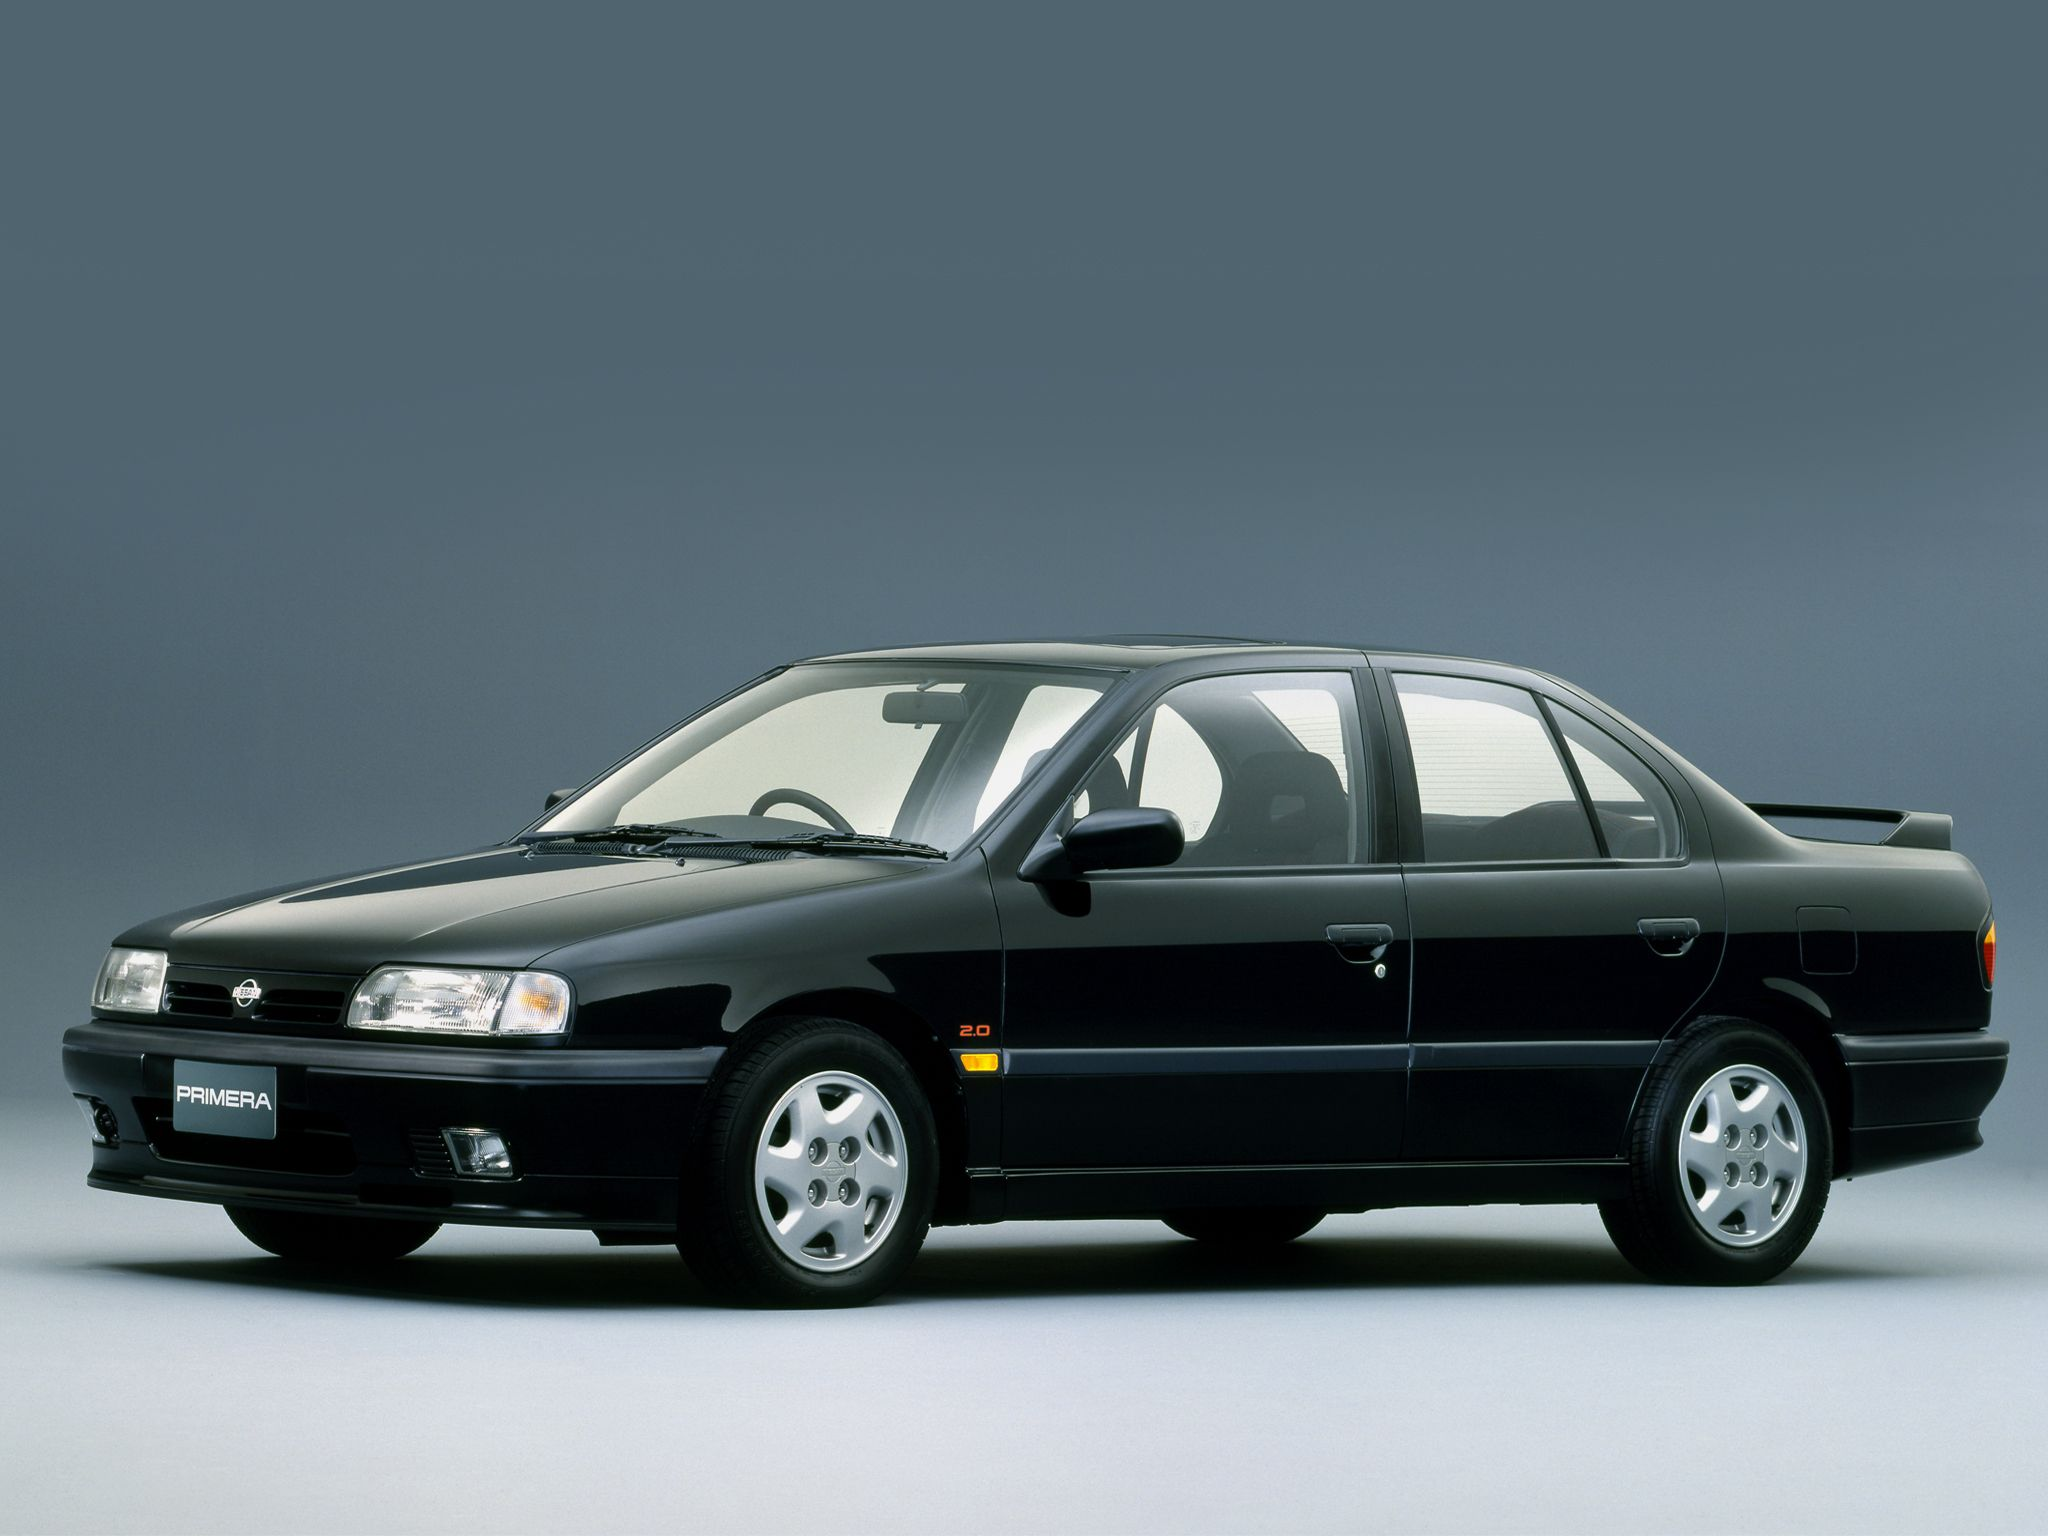 Nissan primera 1990 1996 p10 power unit motor pinterest nissan primera i had this car in silver despite me not exactly being in love with its cosmetics it was by far the most reliable car i have ever owned vanachro Gallery